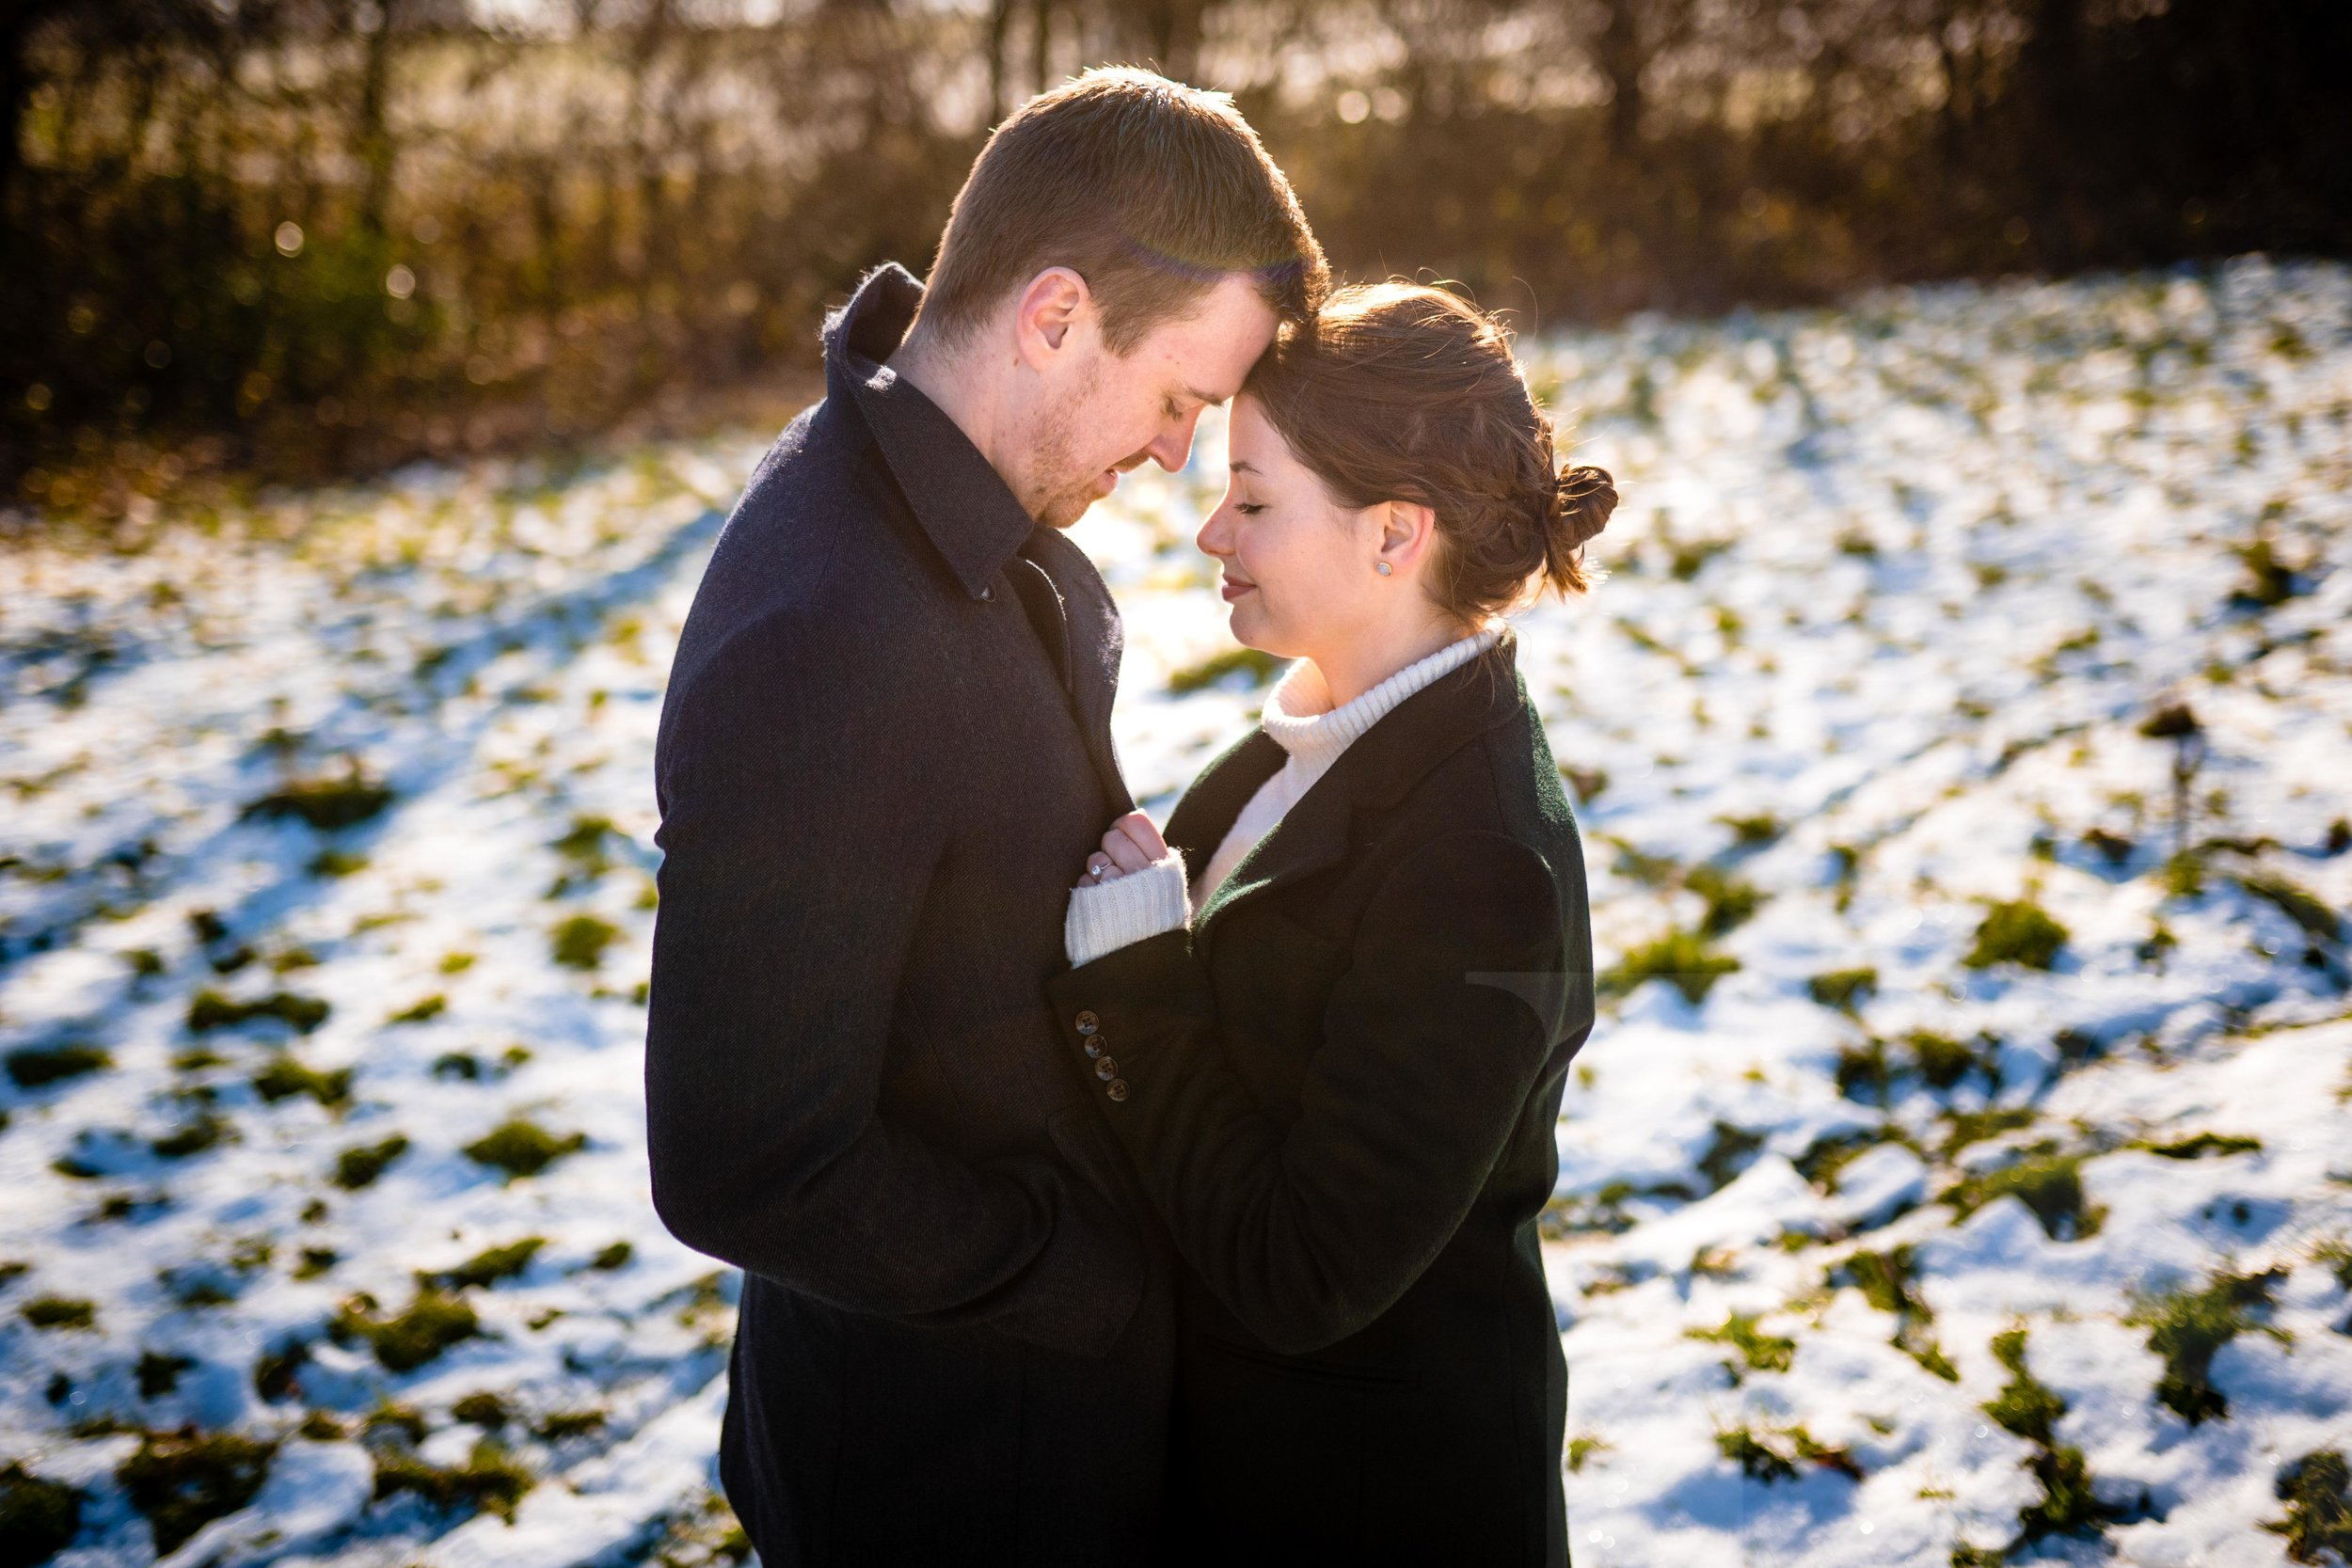 hampstead-heath-winter-engagement-shoot-14.jpg